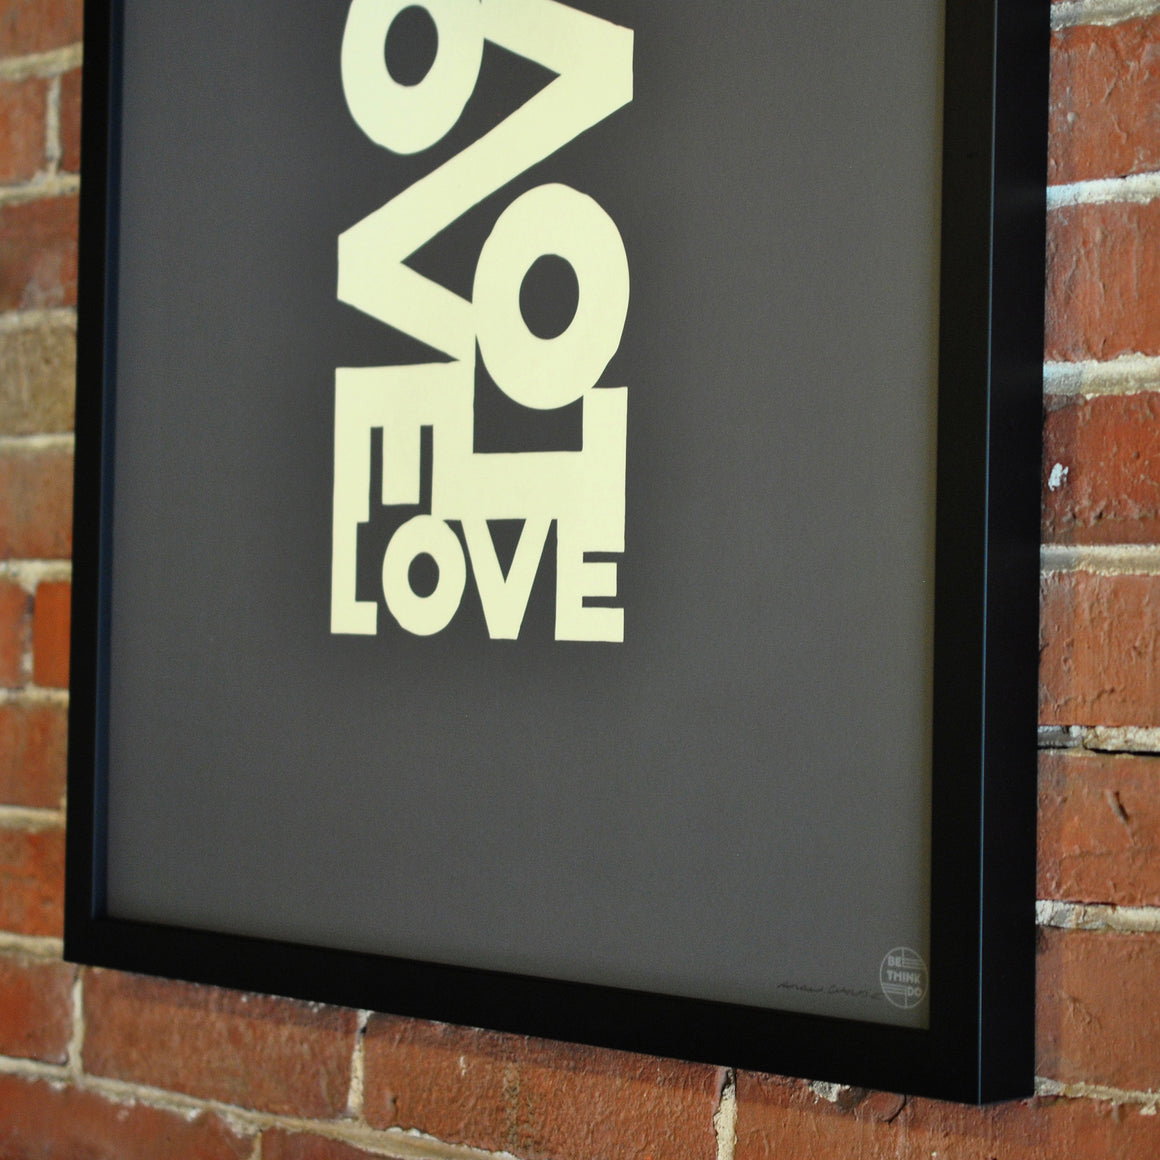 "Love Energy Graphite Art Print 18"" x 24"" Framed"